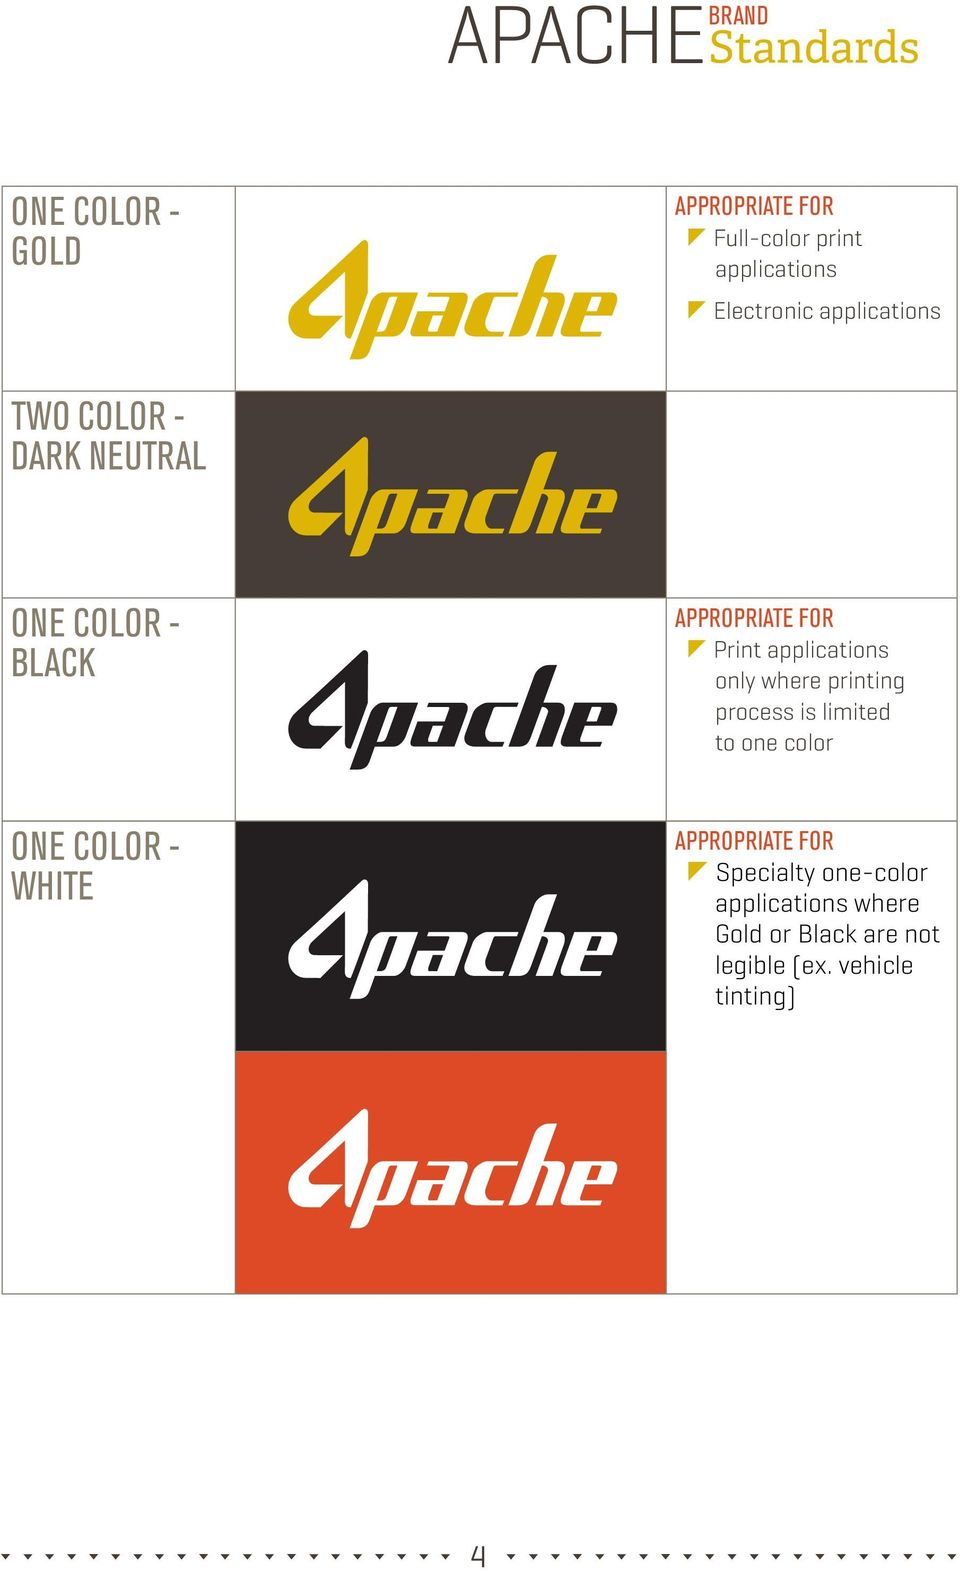 applications only where printing process is limited to one color ONE COLOR - WHITE